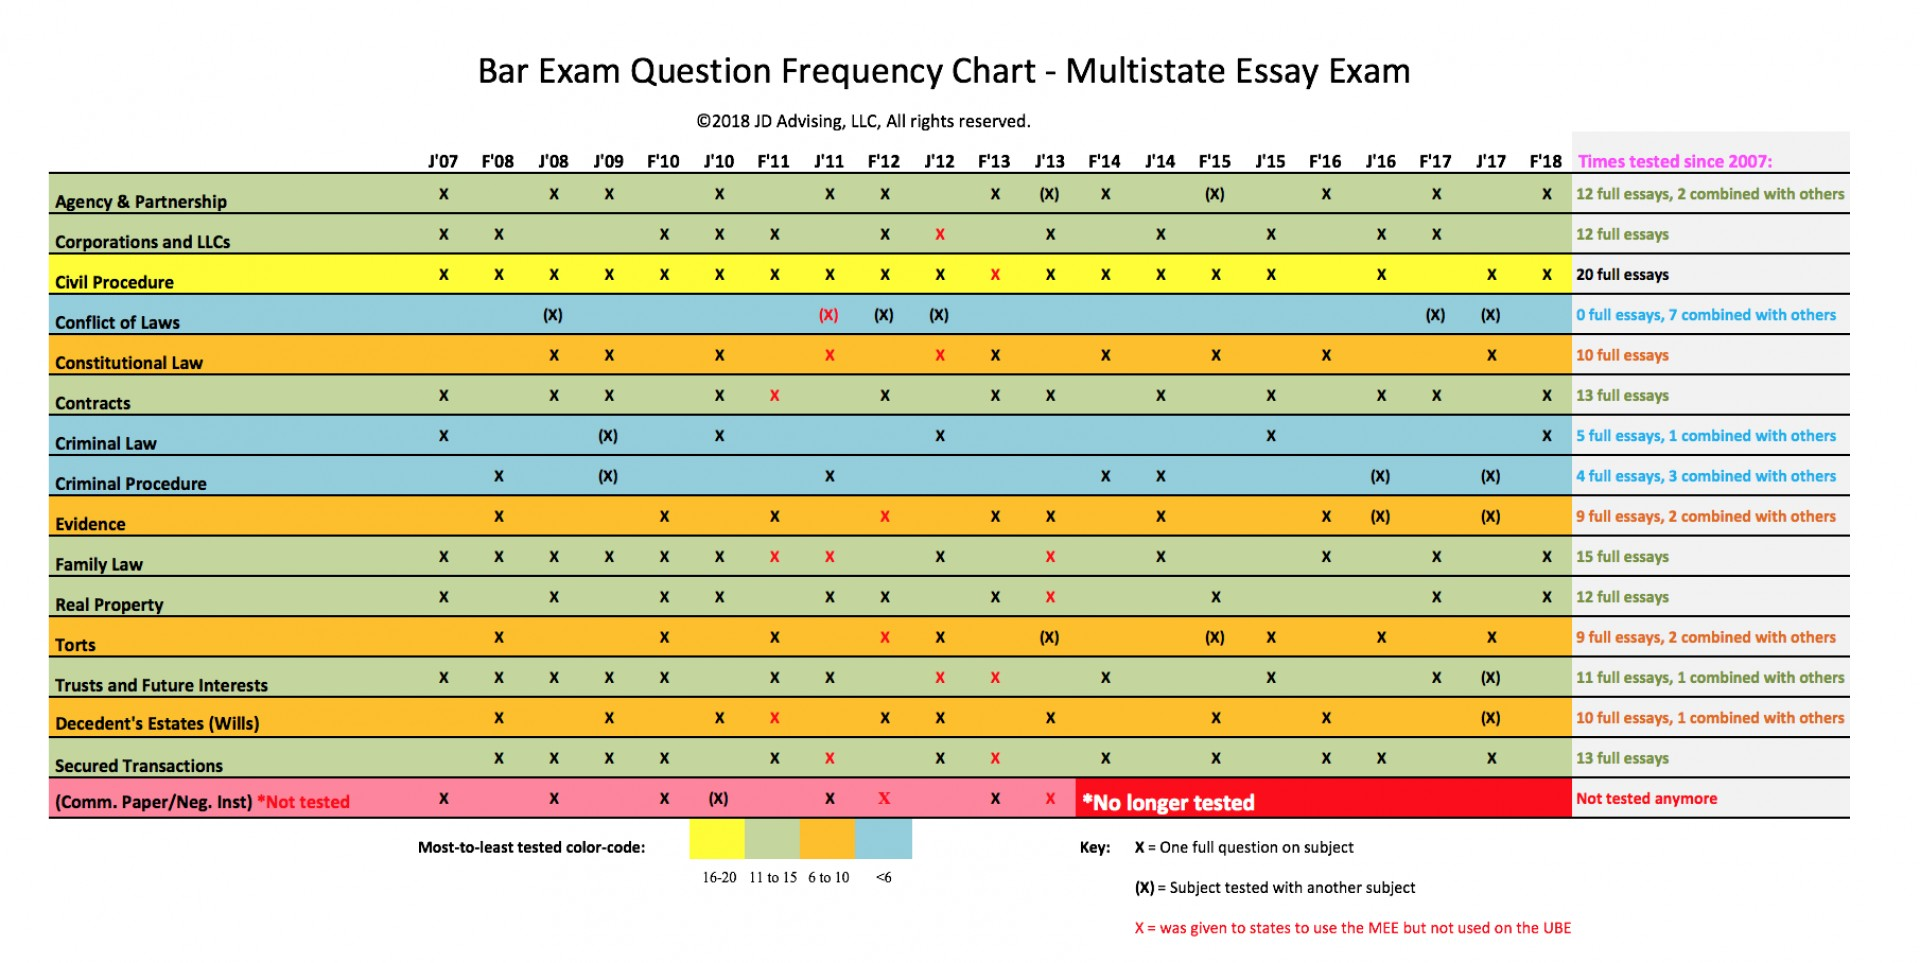 010 Mee Frequency Chart 2018 California Bar Essays Essay Marvelous July 2017 Exam Graded February 1920